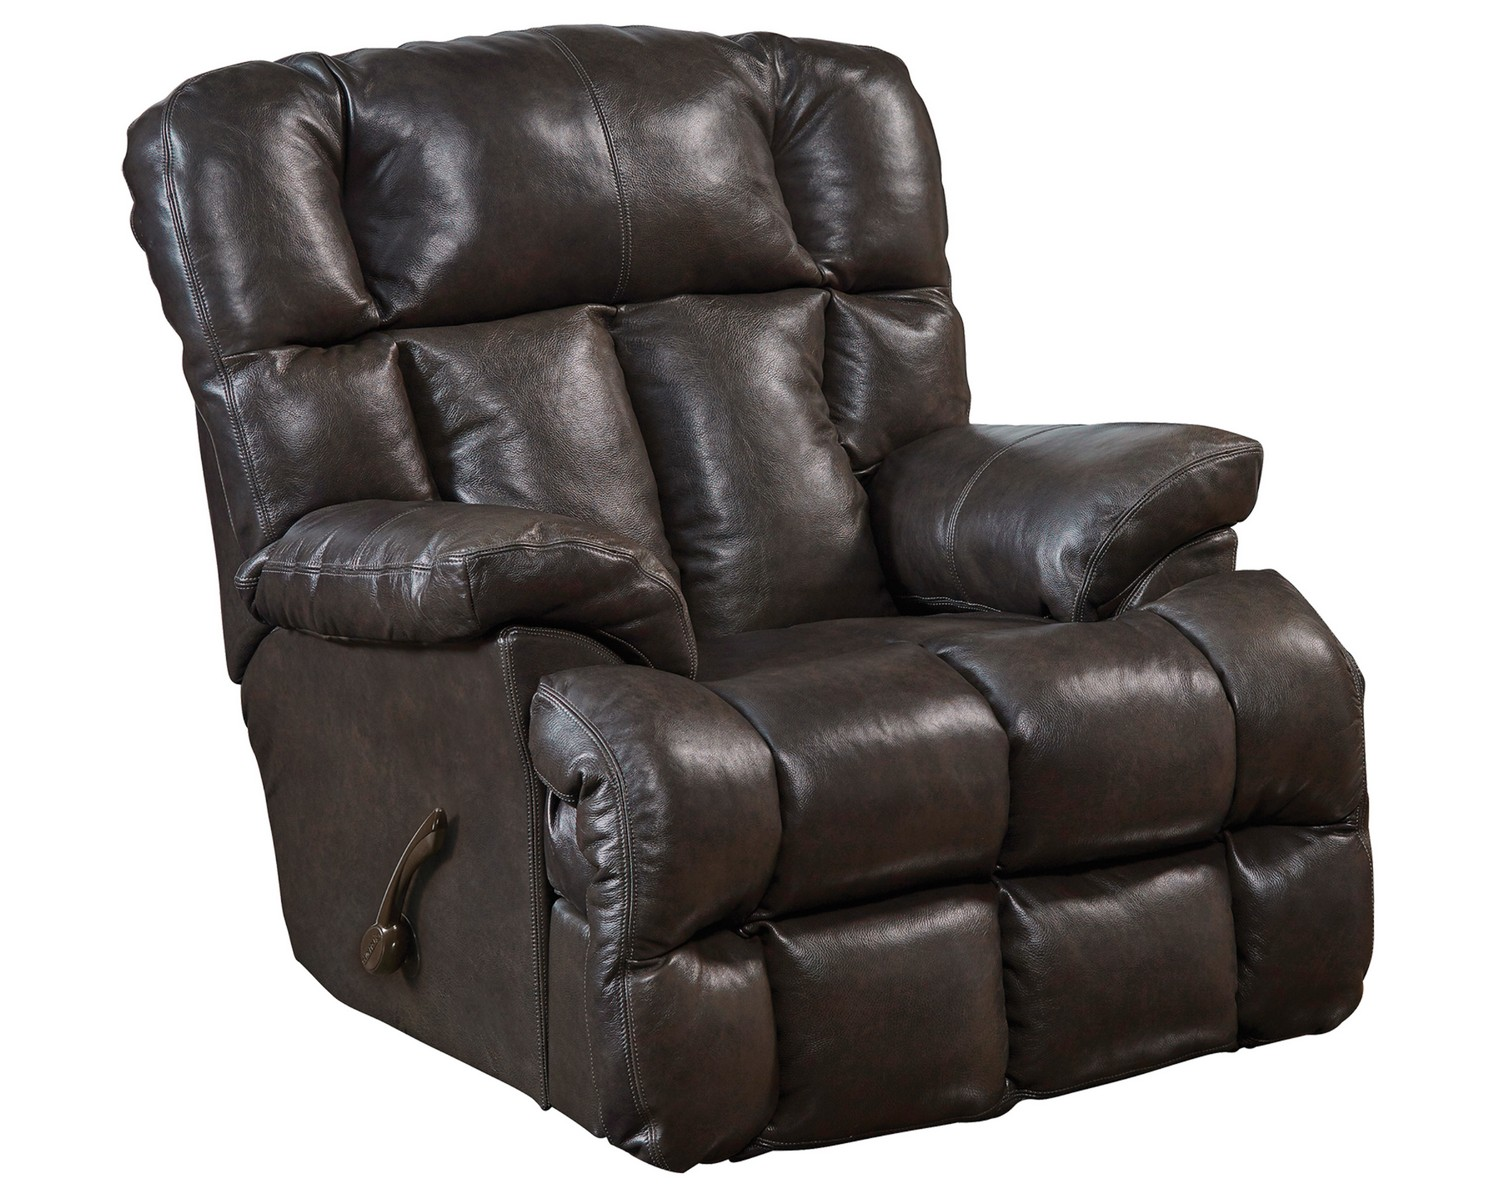 CatNapper Victor Top Grain Leather Chaise Rocker Recliner - Chocolate